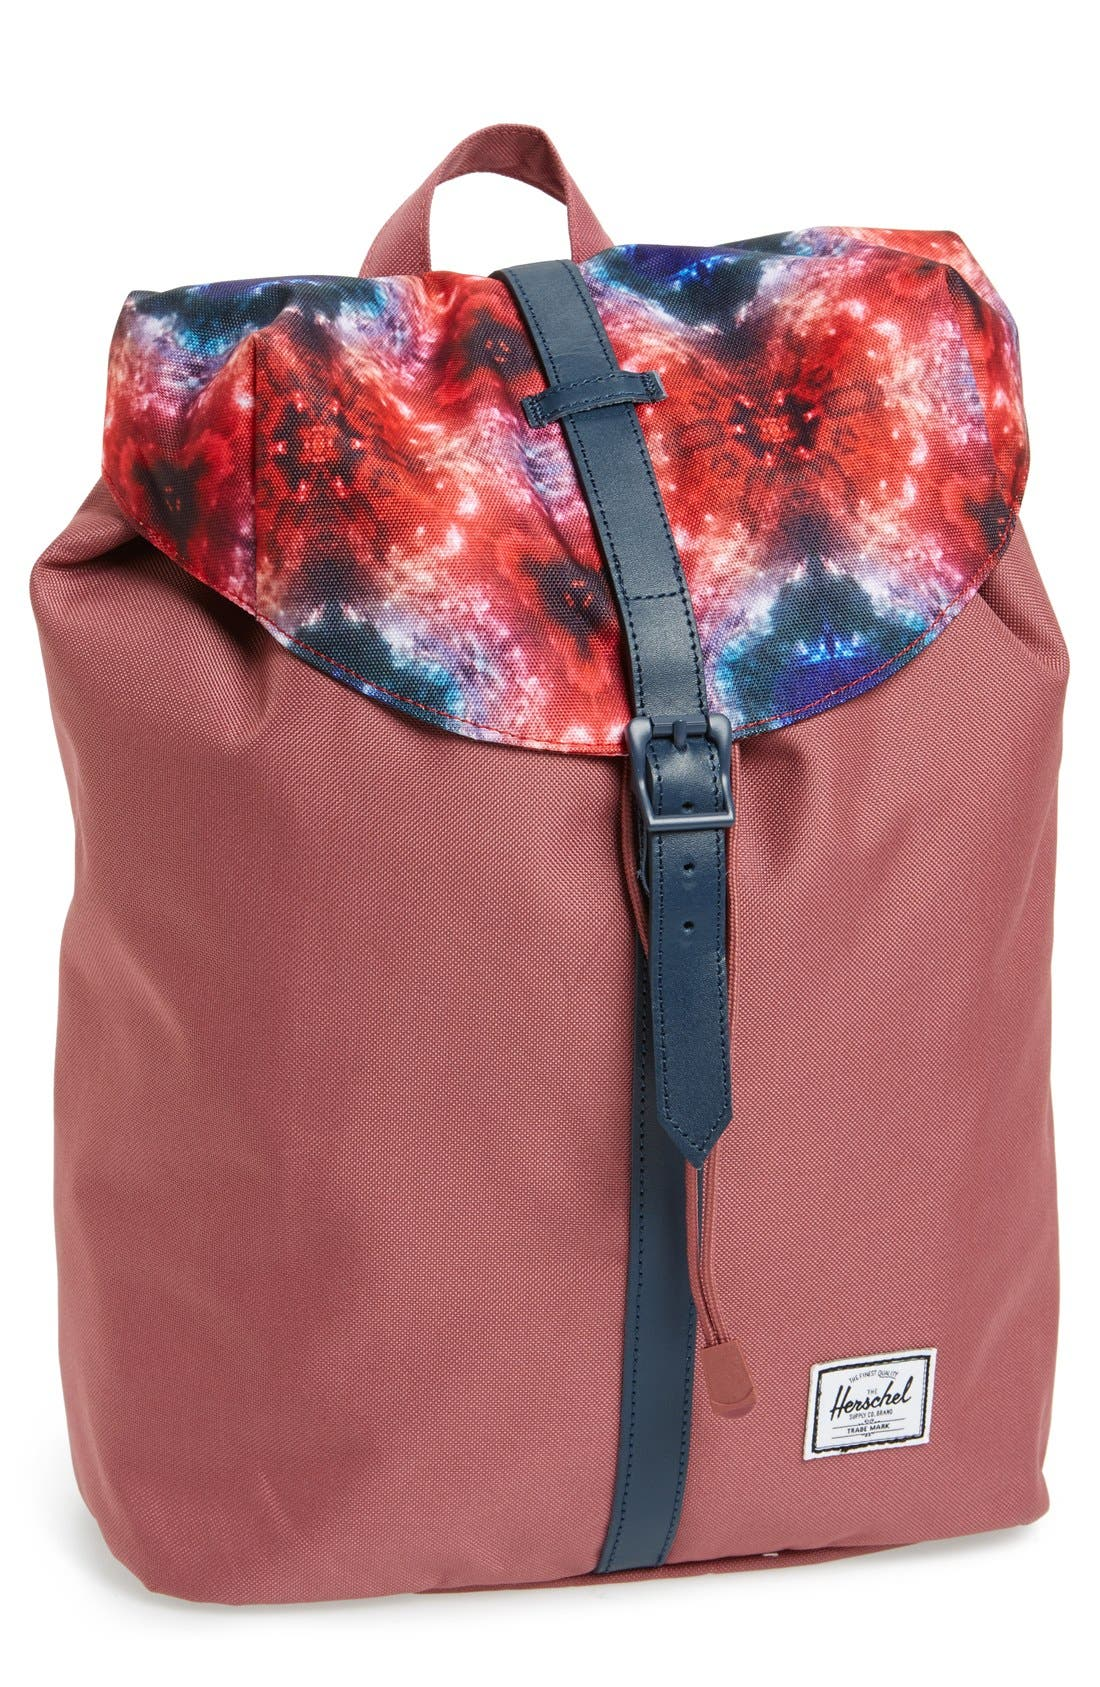 Main Image - Herschel Supply Co. 'Northern Lights - Post' Backpack